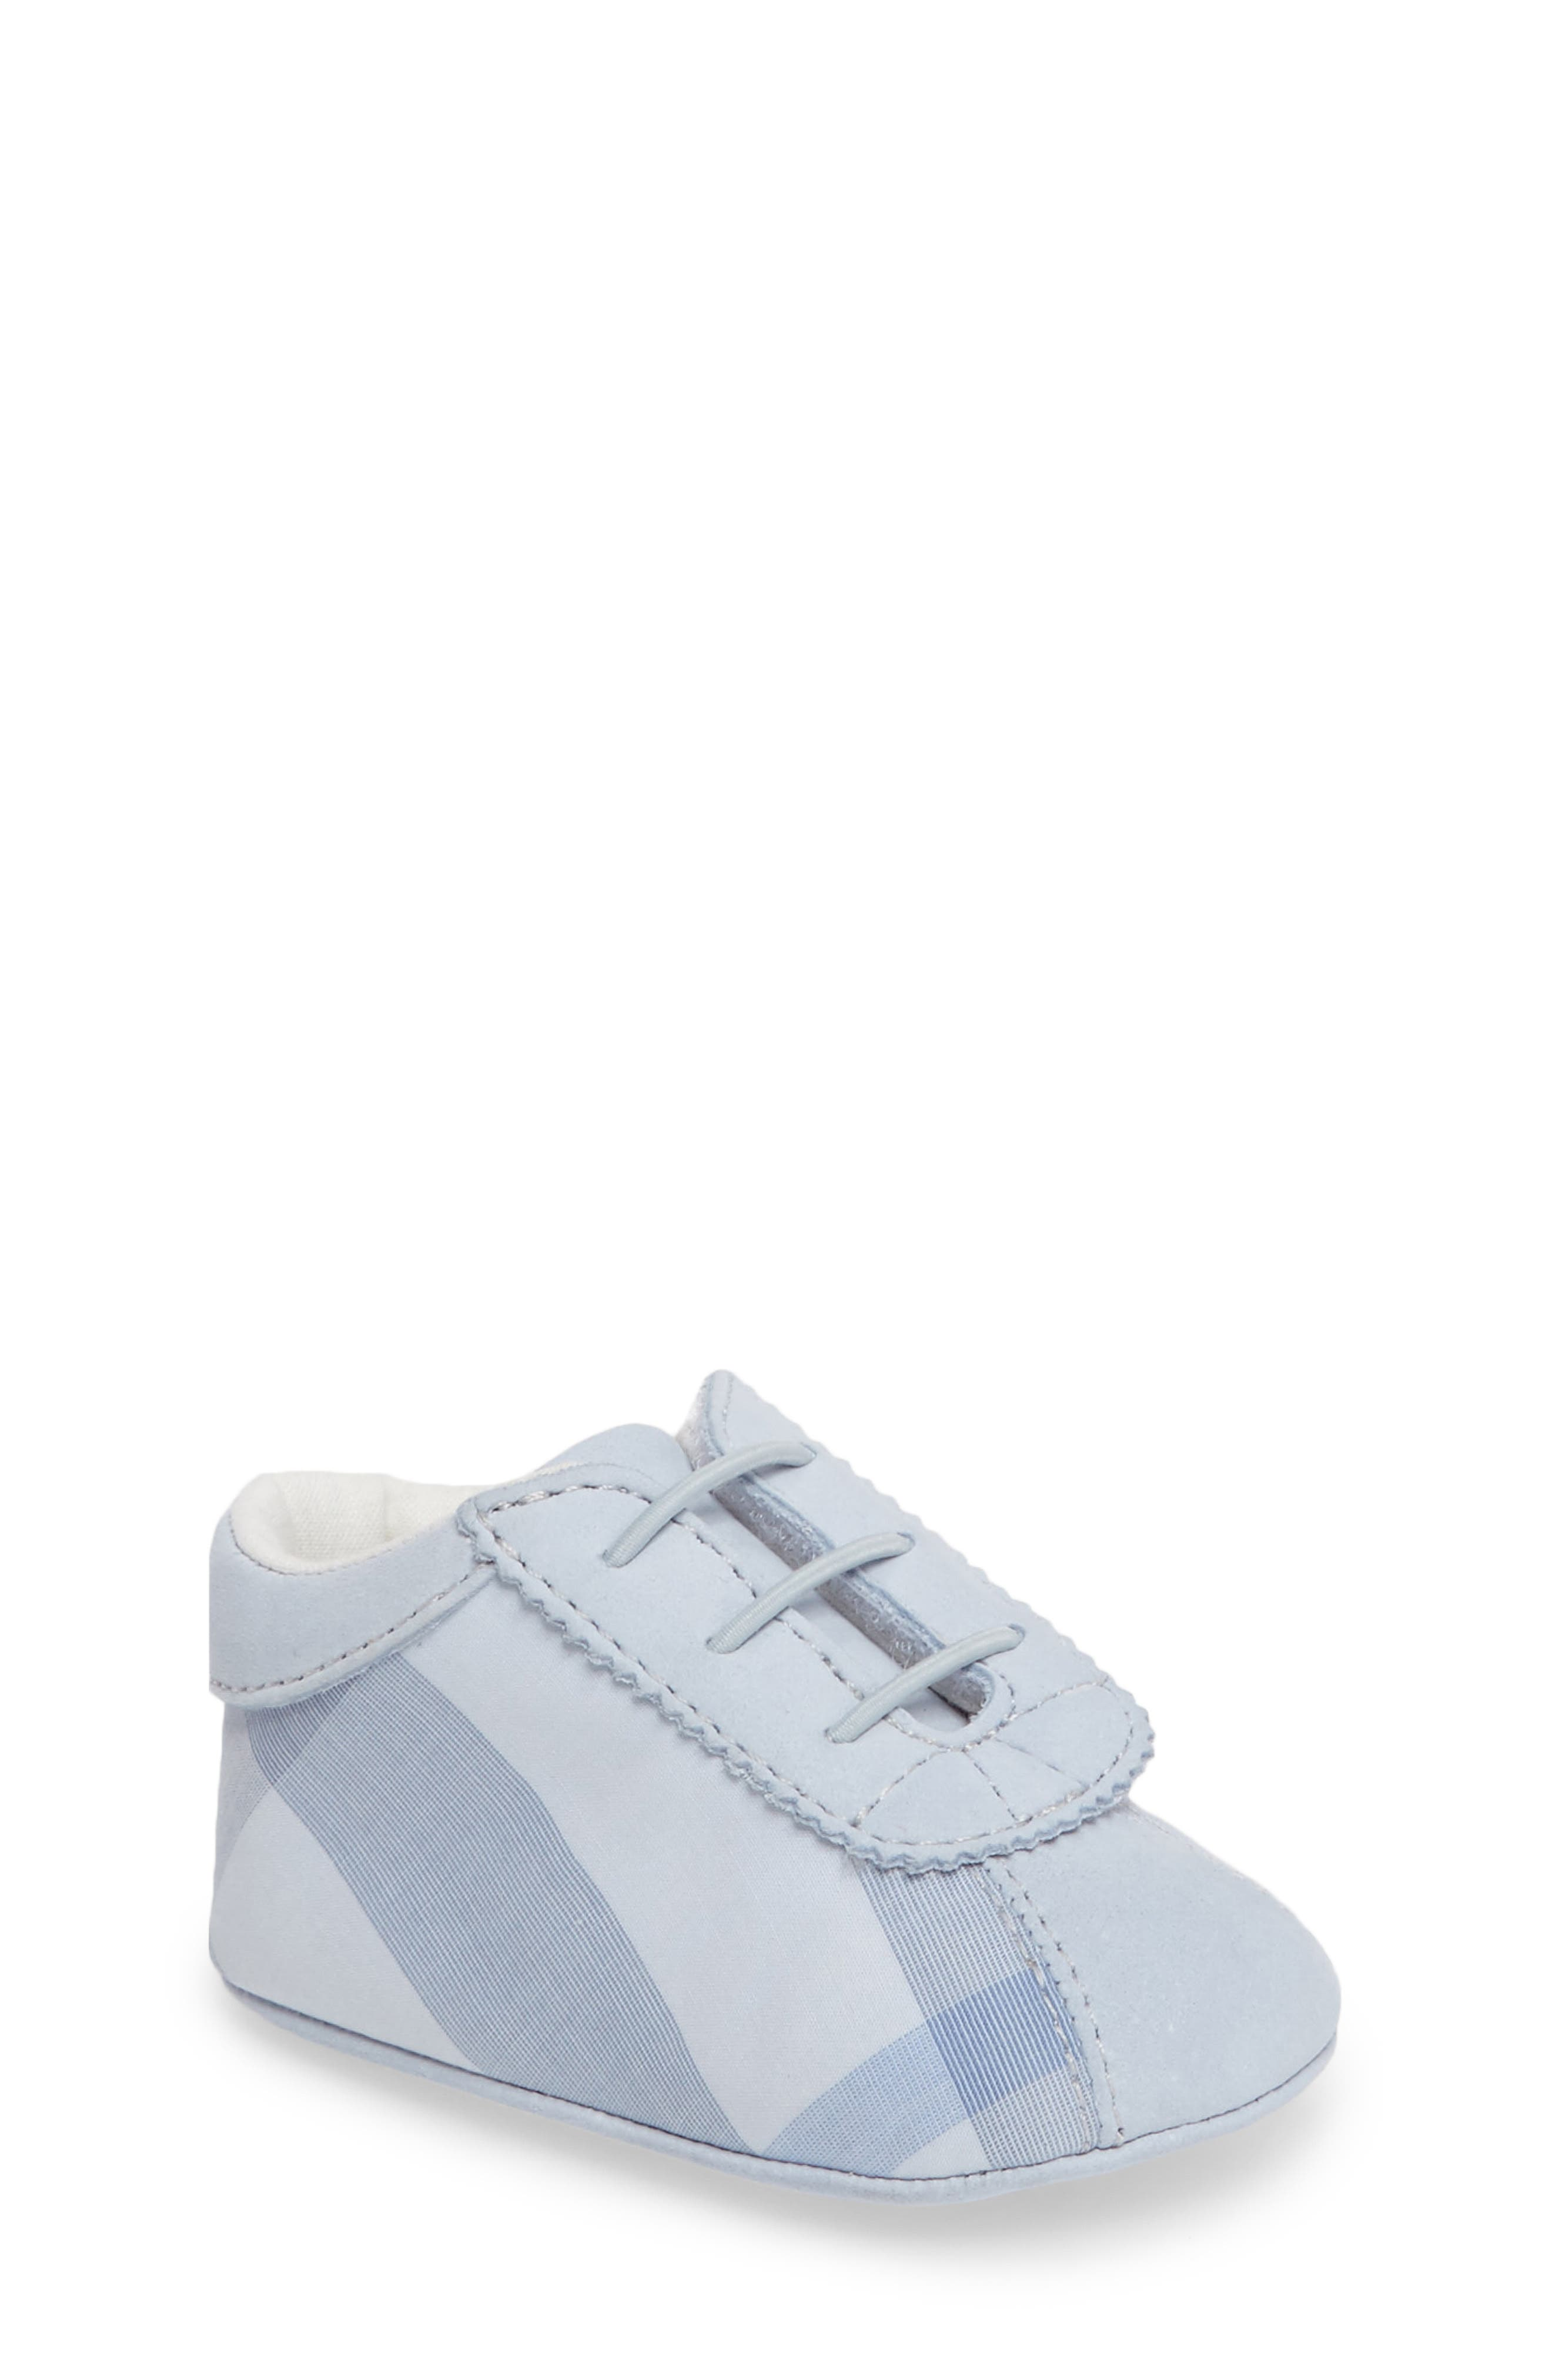 Burberry 'Bosco' Crib Shoe (Baby)